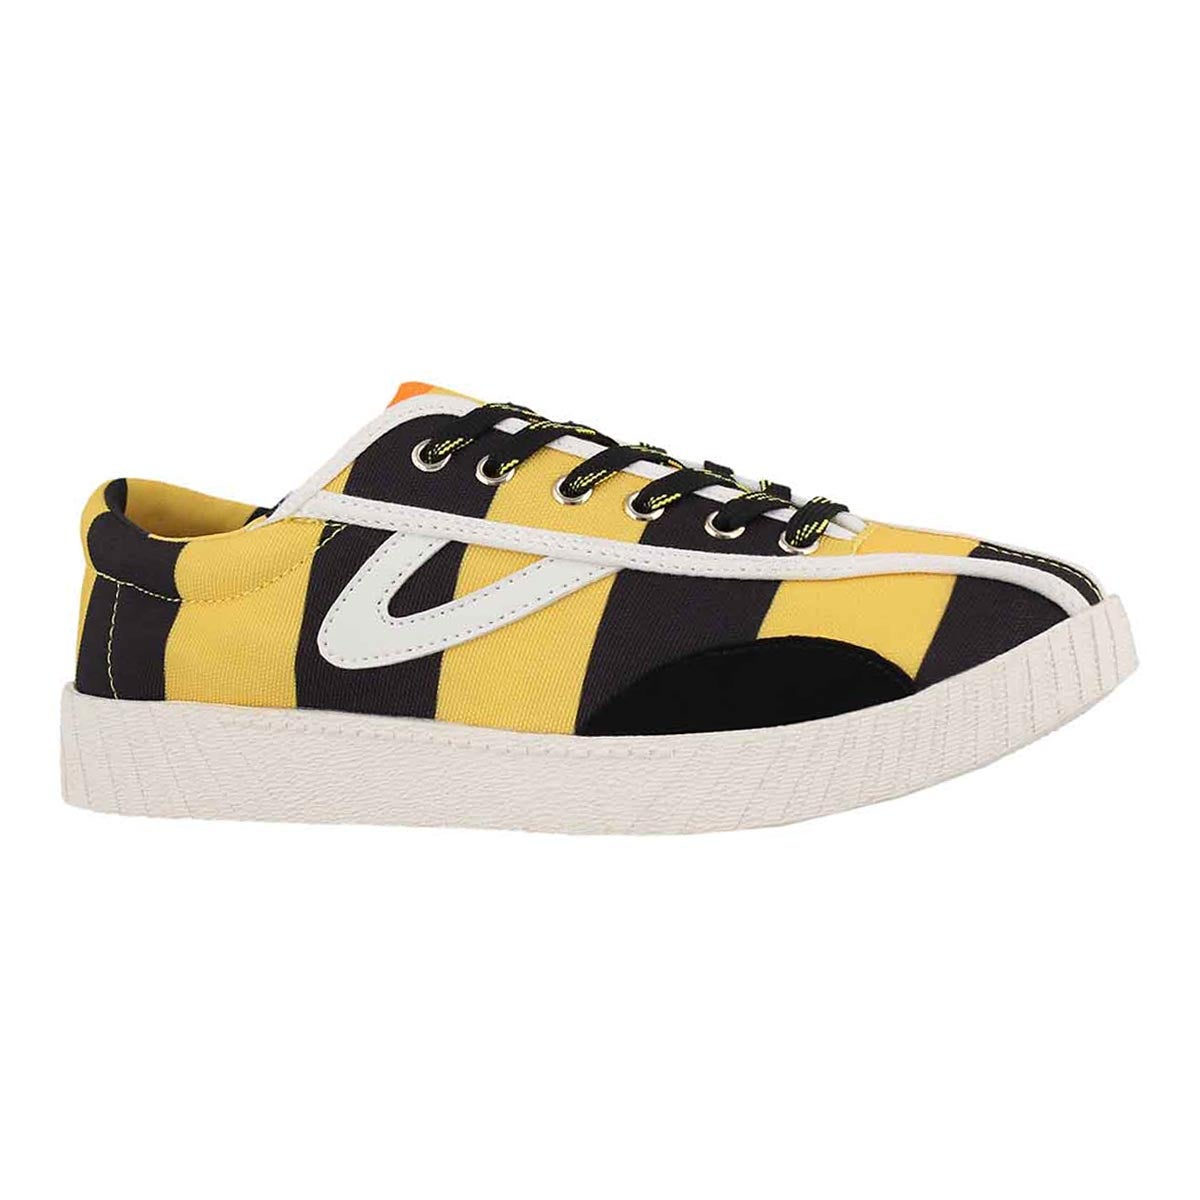 Women's NYLITE RUGBY black/yellow sneakers